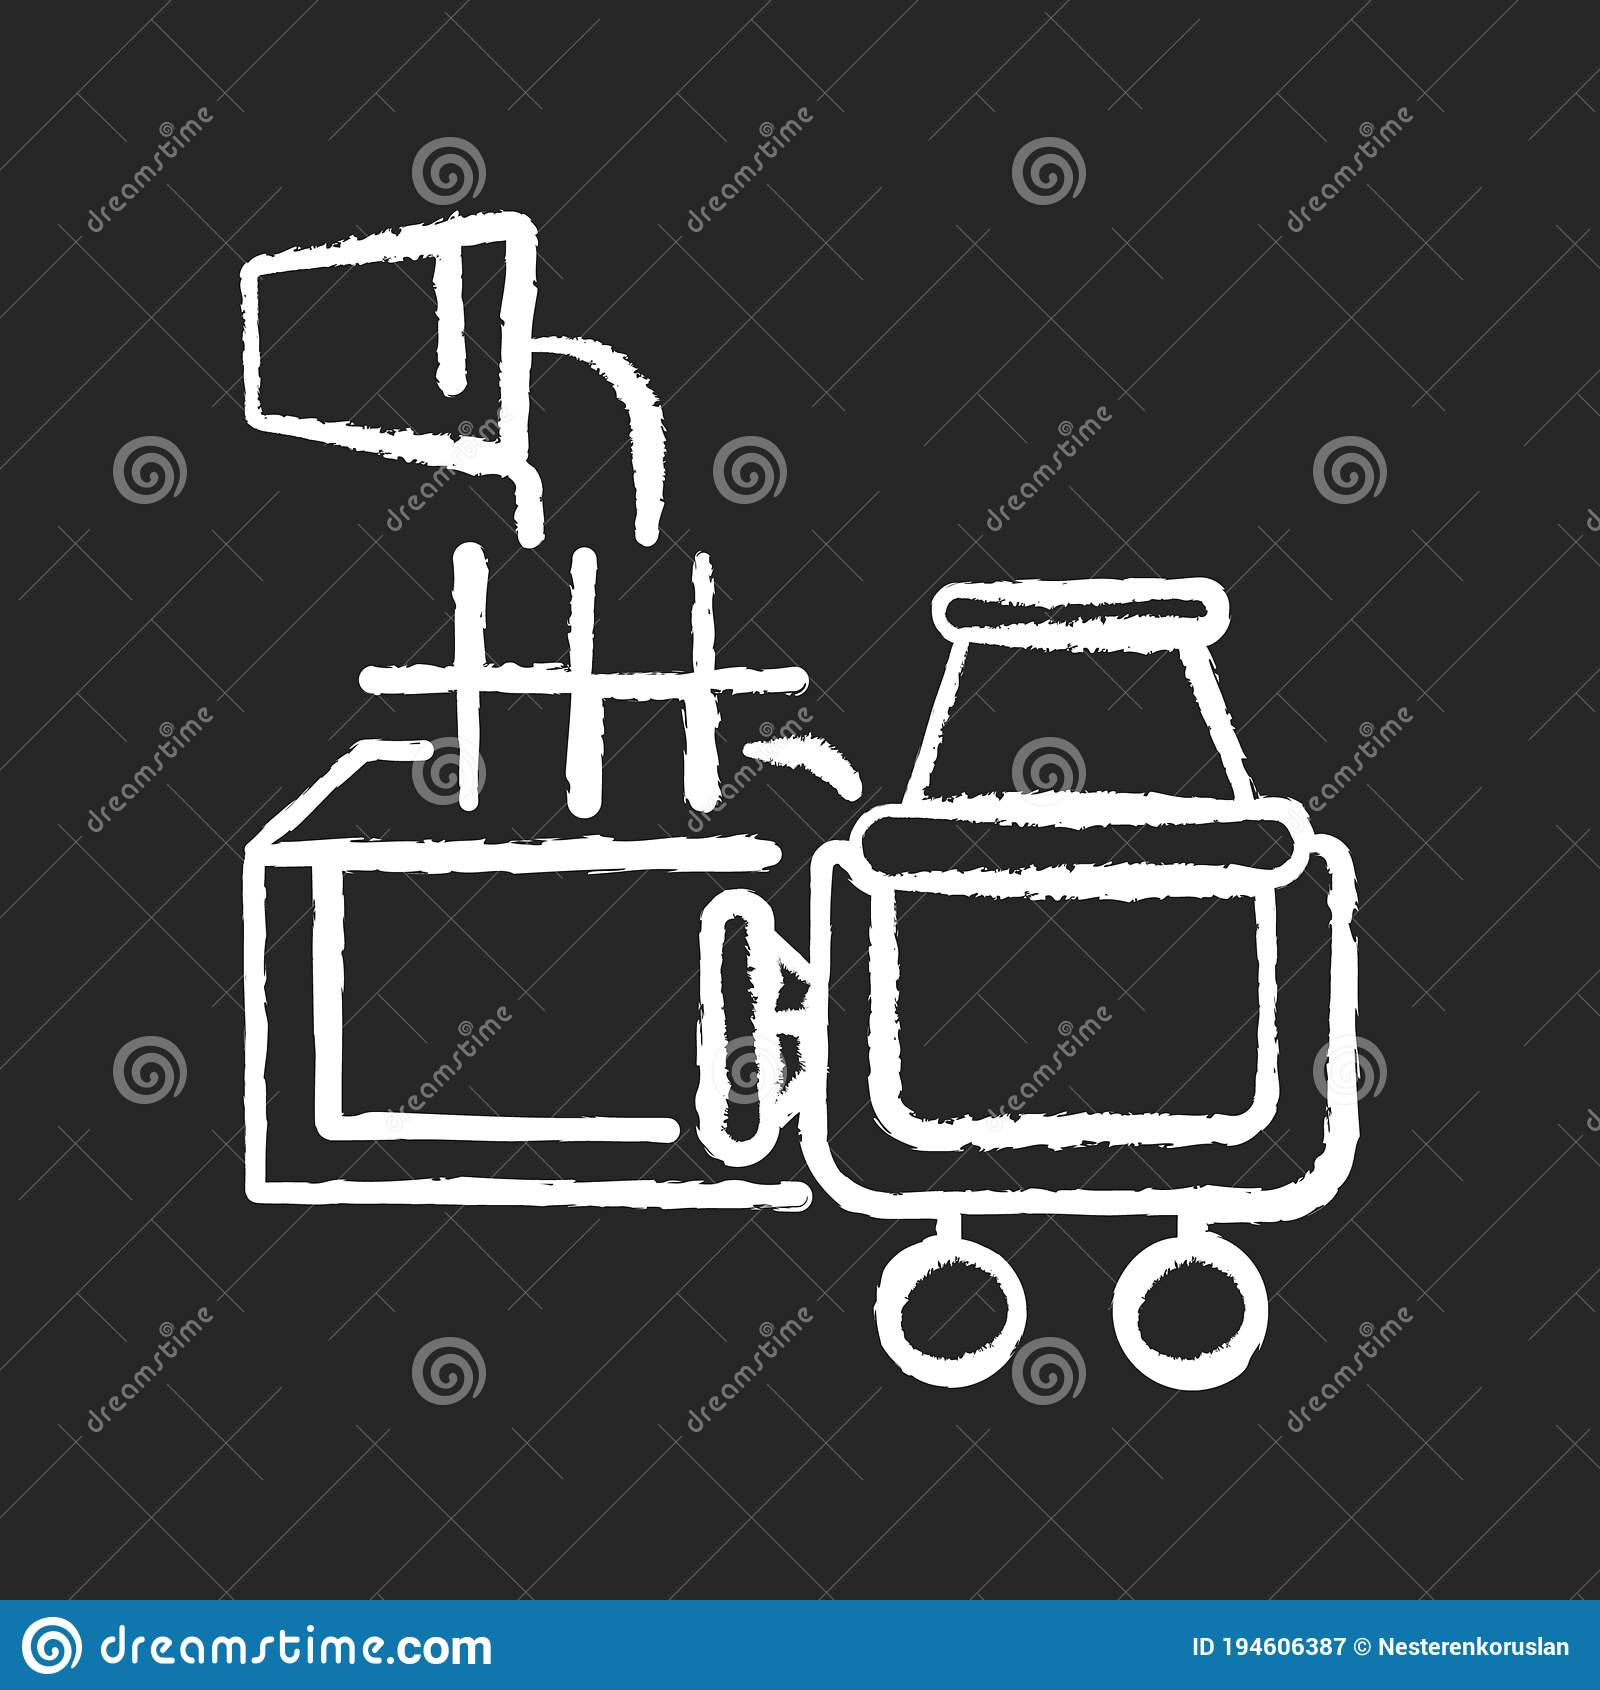 Laying Foundation Chalk White Icon On Black Background Stock Vector Illustration Of Building House 194606387